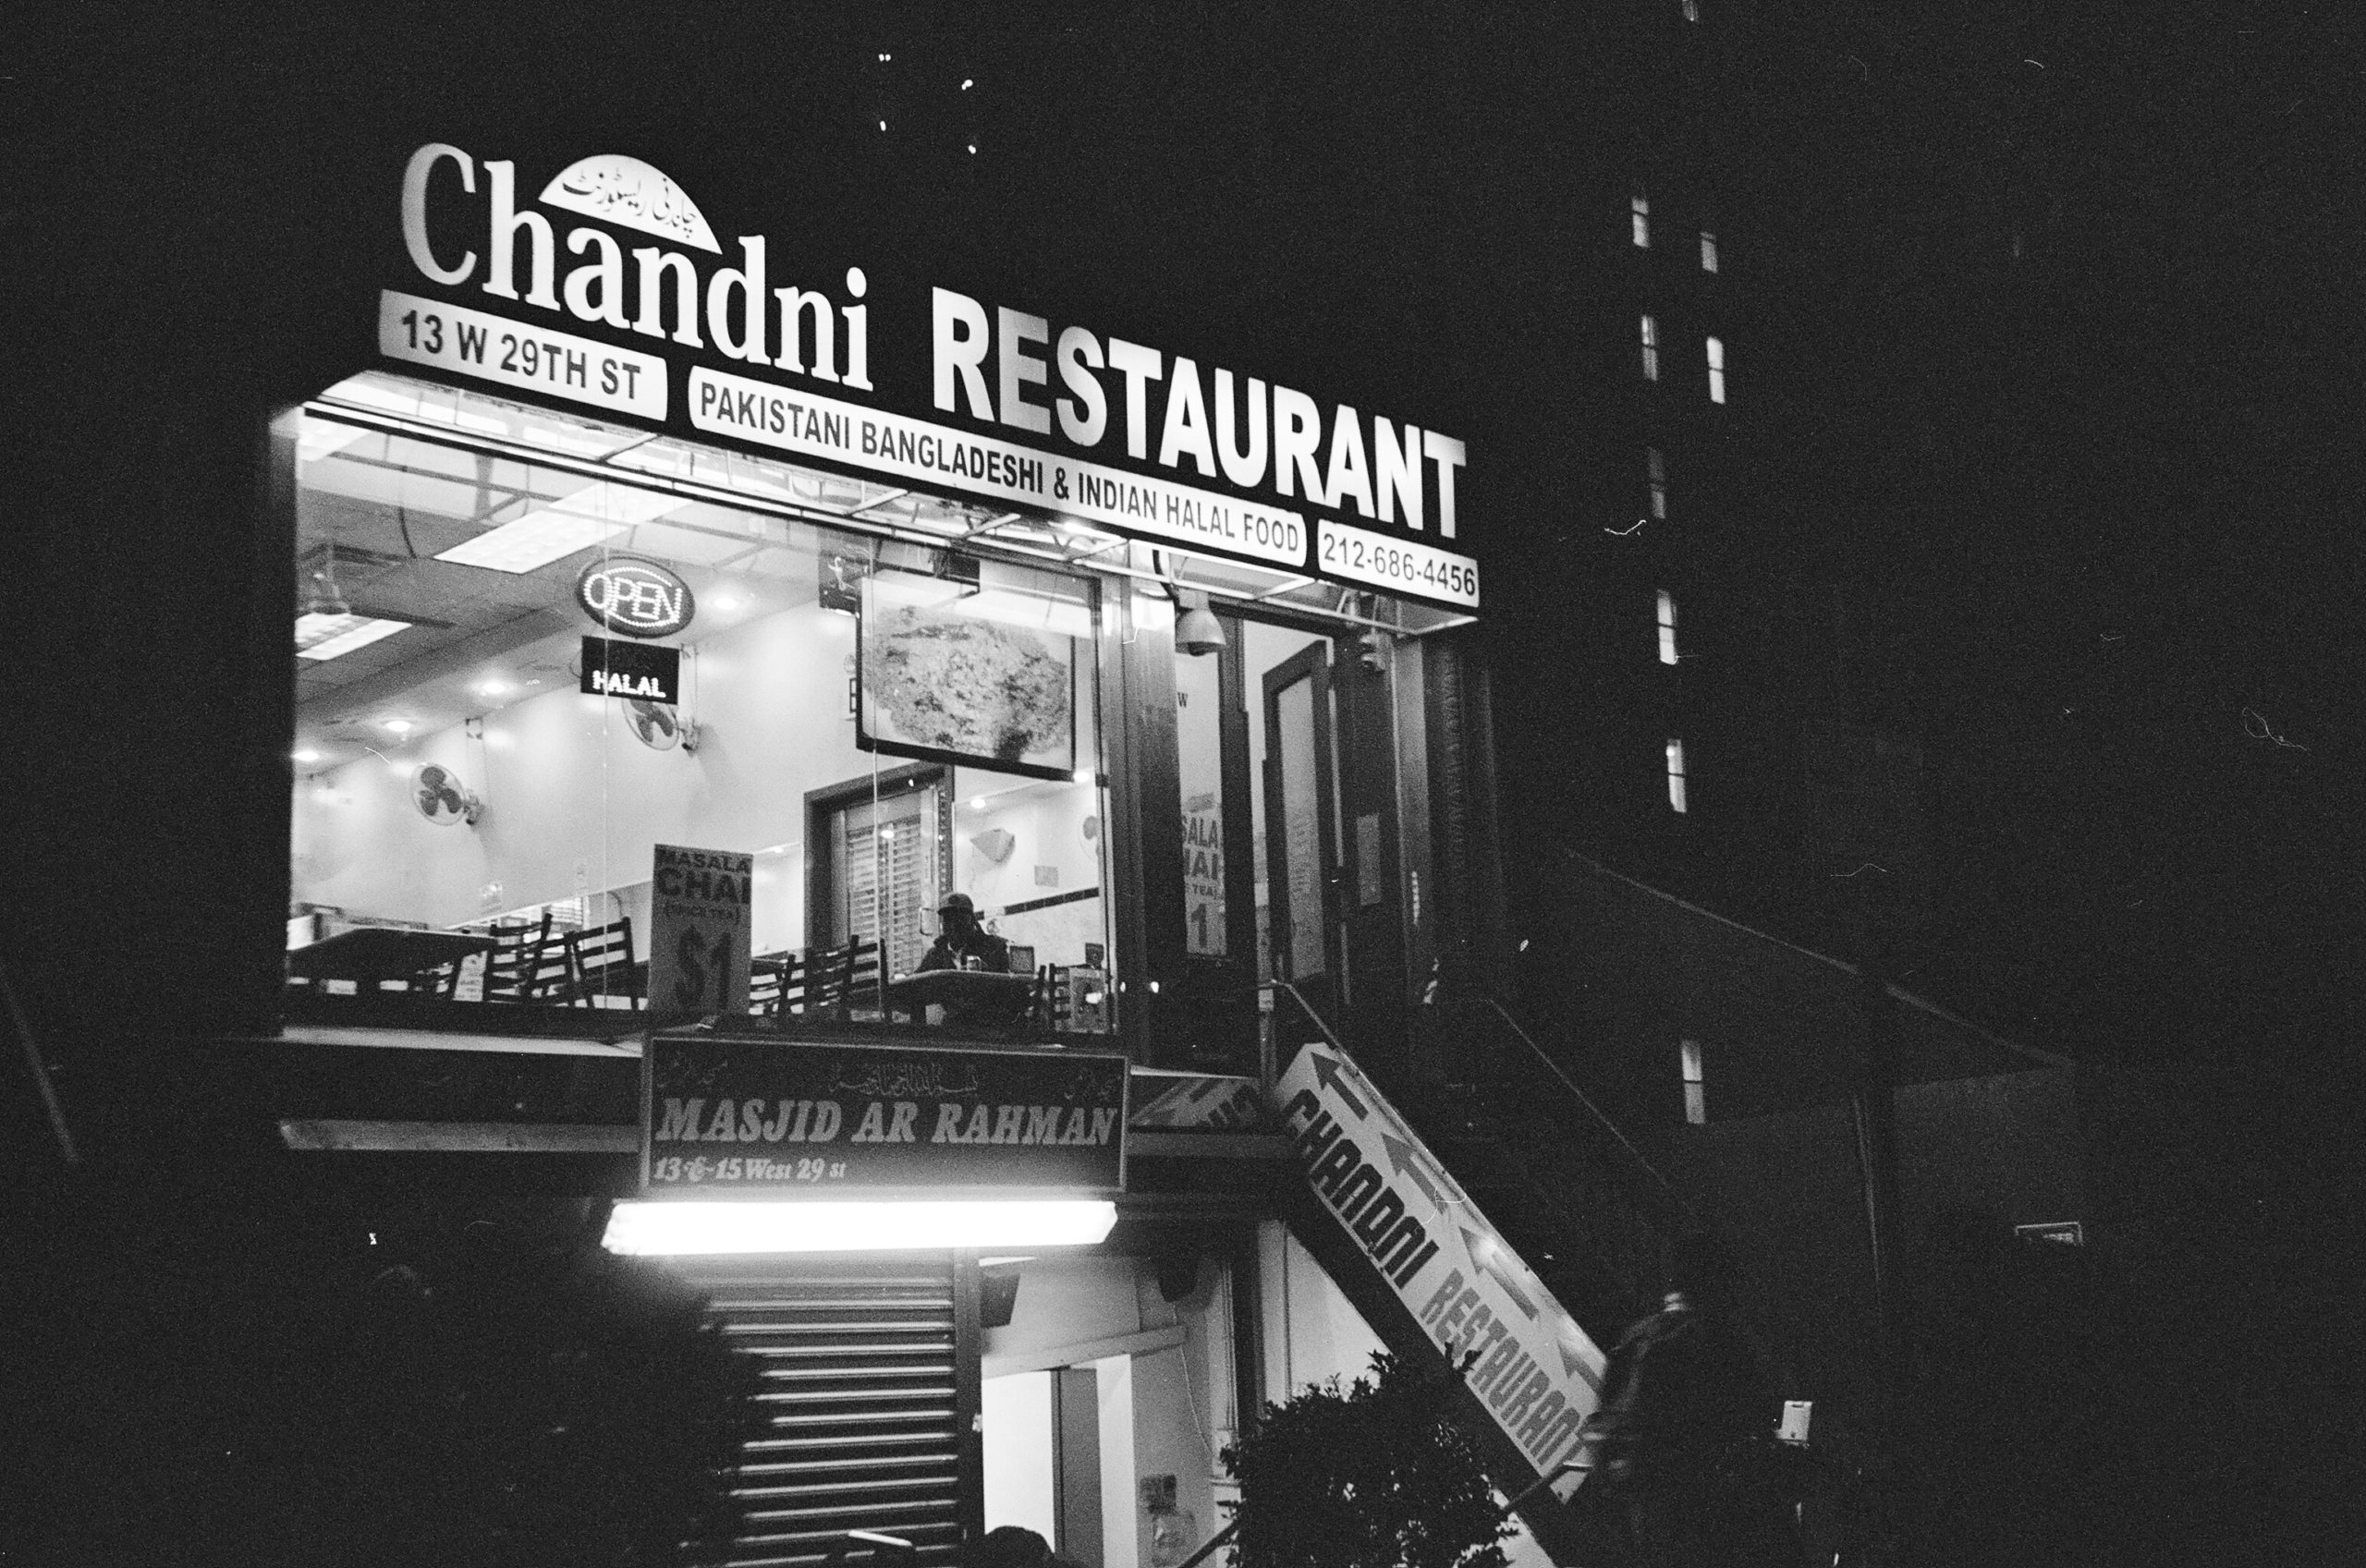 Black and white photo of Chandi Restaurant at night. There is a man in the window of the restaurant, he is seated at a table with his meal.